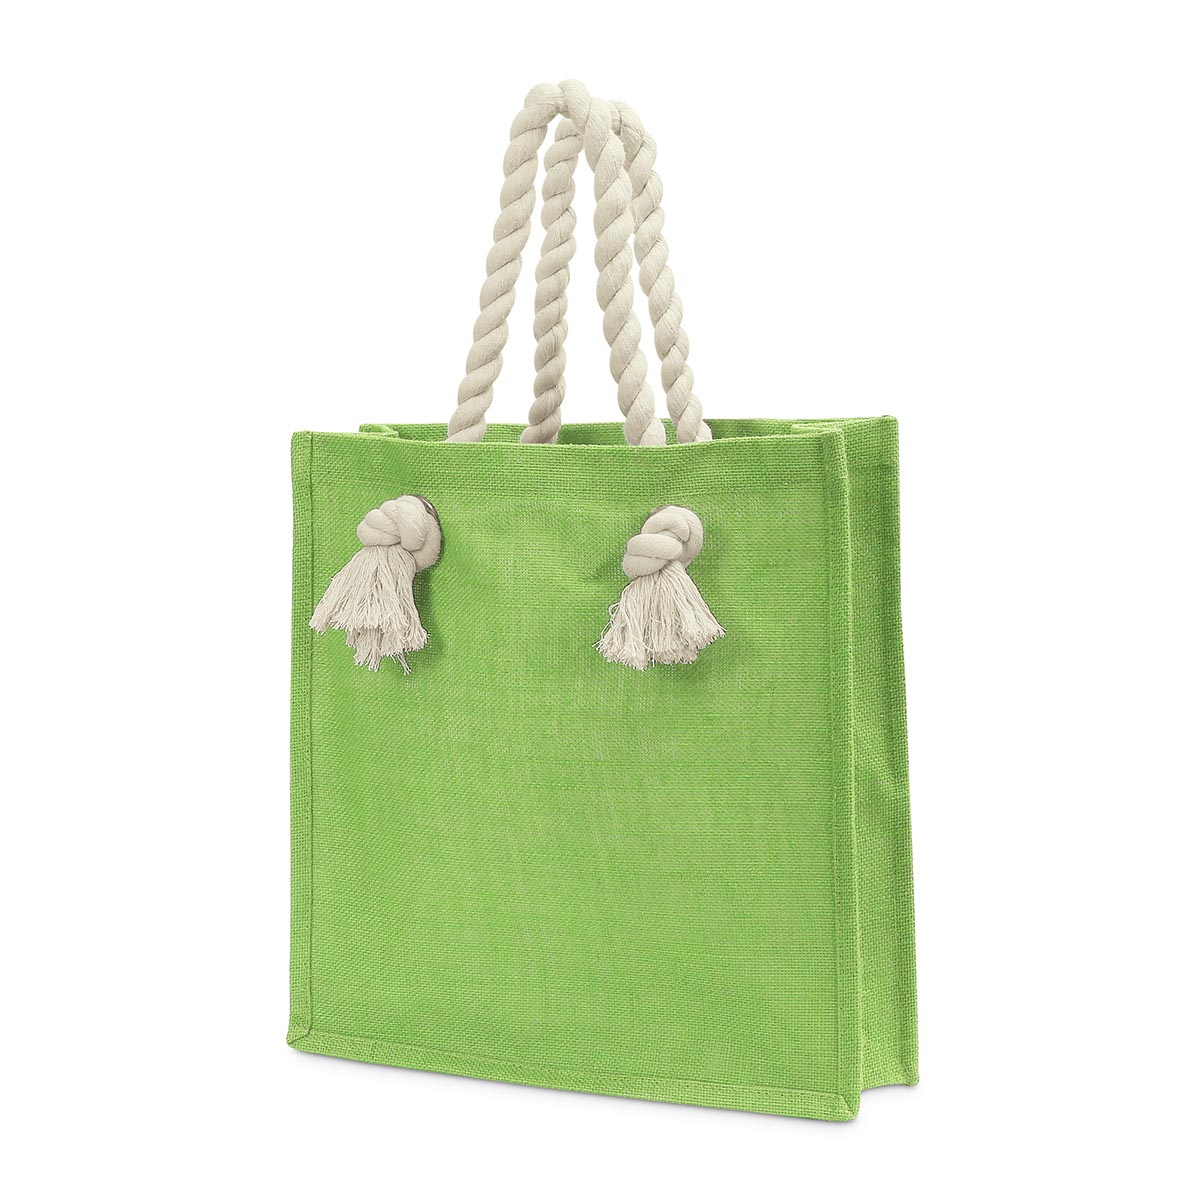 jute lime market tote, rope handle